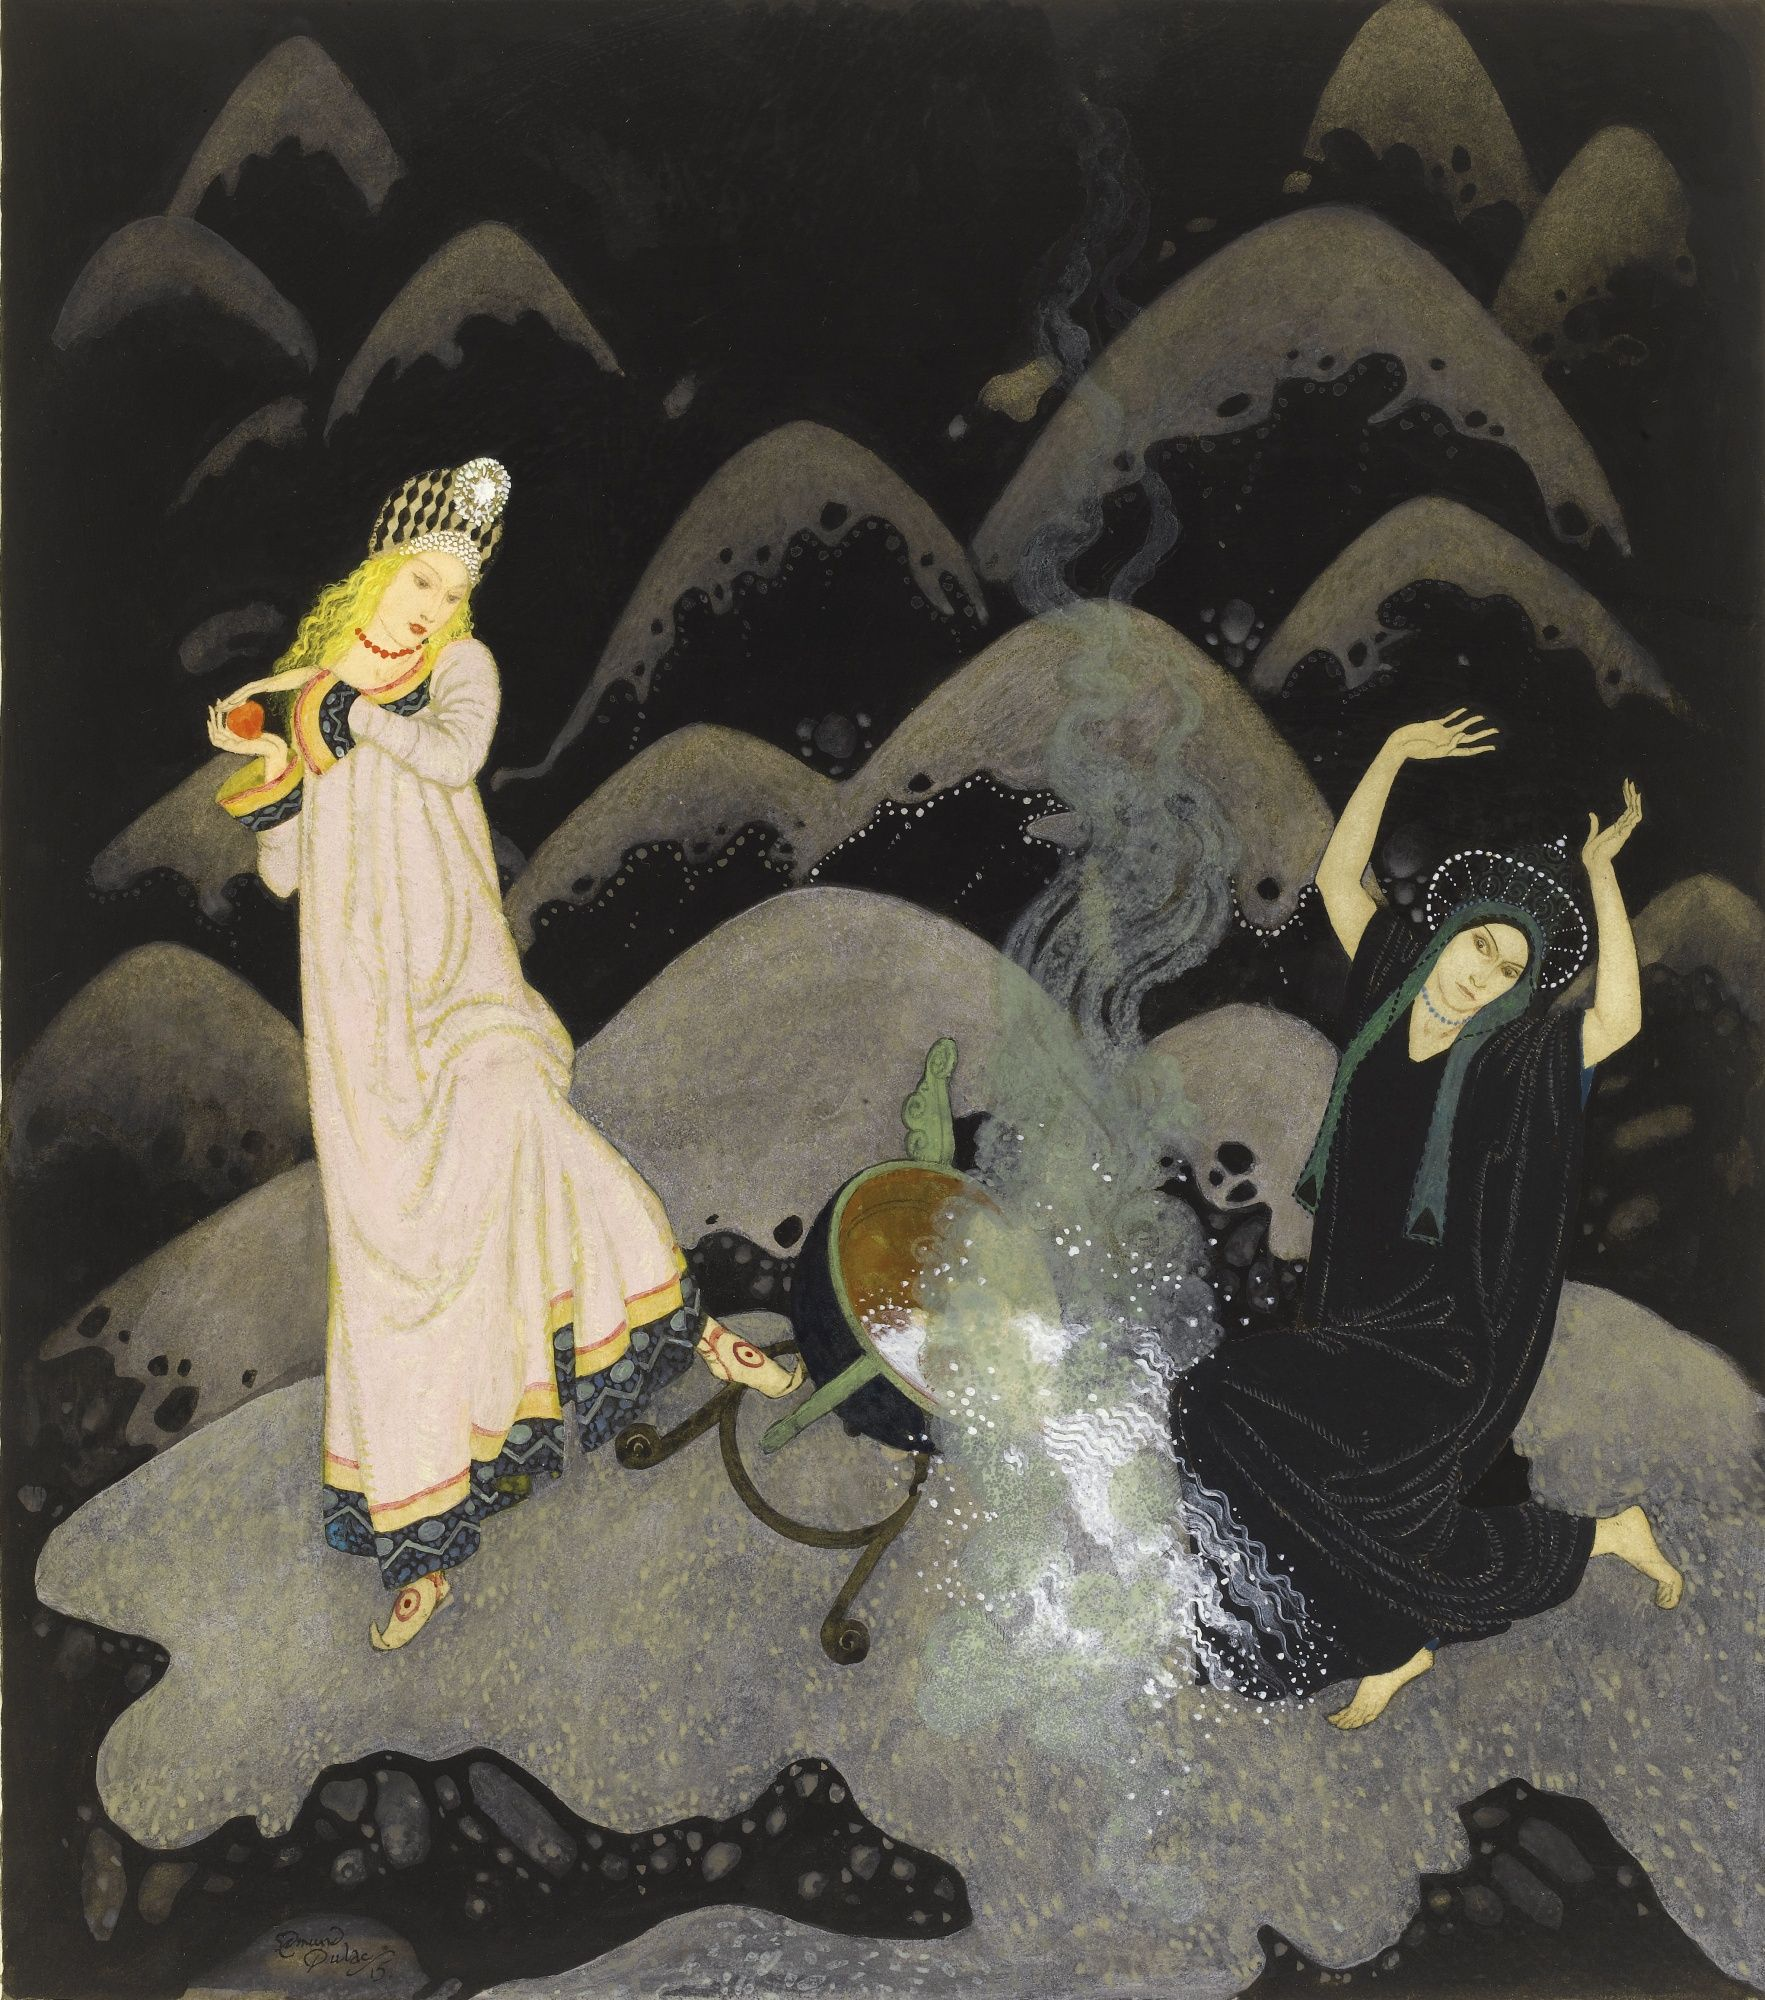 """""""WITH A SCREAM THE PRINCESS RUSHED FORWARD, AND, BEFORE HER WICKED SISTER COULD PREVENT HER, SHE HAD UPSET THE CAULDRON WITH A CRASH."""" - Edmund Dulac."""